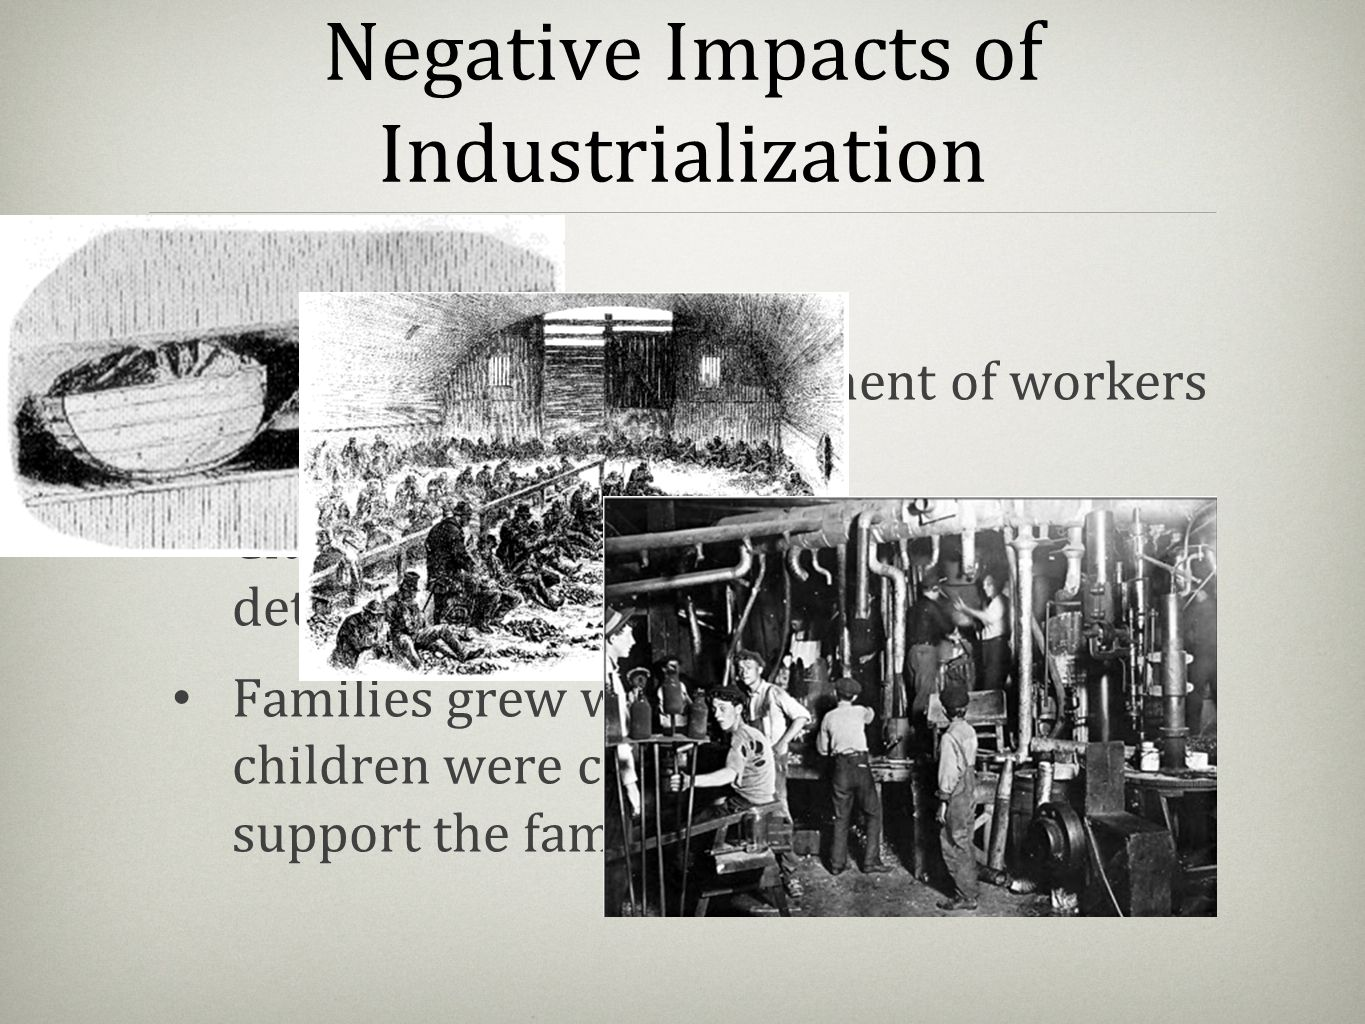 Negative Impacts of Industrialization Production soared, treatment of workers plummeted. Cities grew in size, living conditions deteriorated. Families